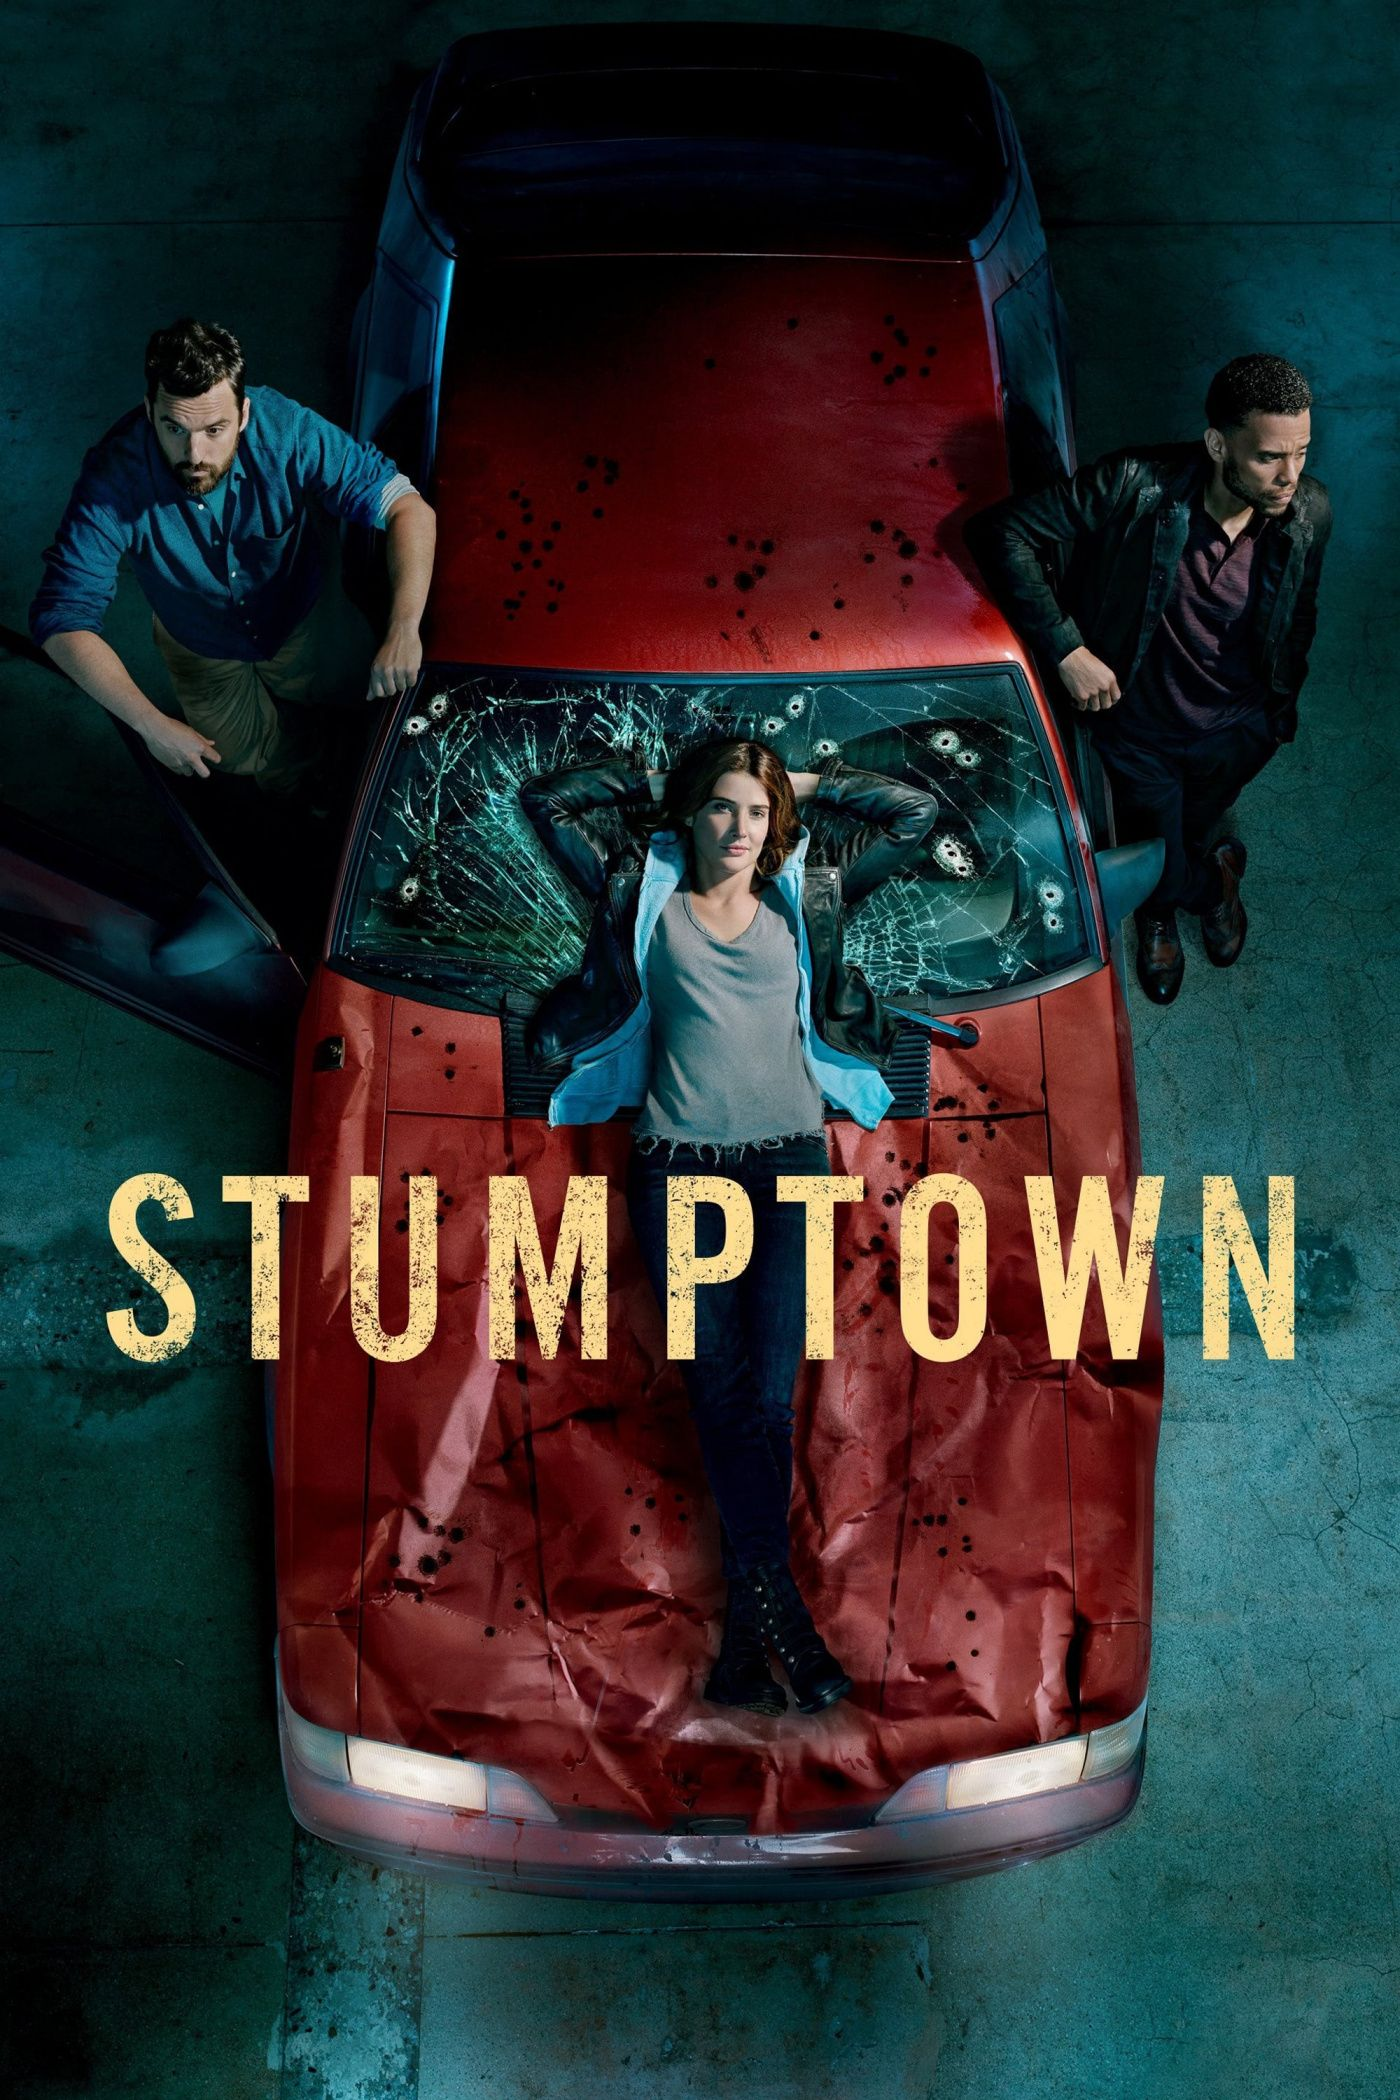 Watch online free Stumptown (2020) Season 1 Episode 11 on